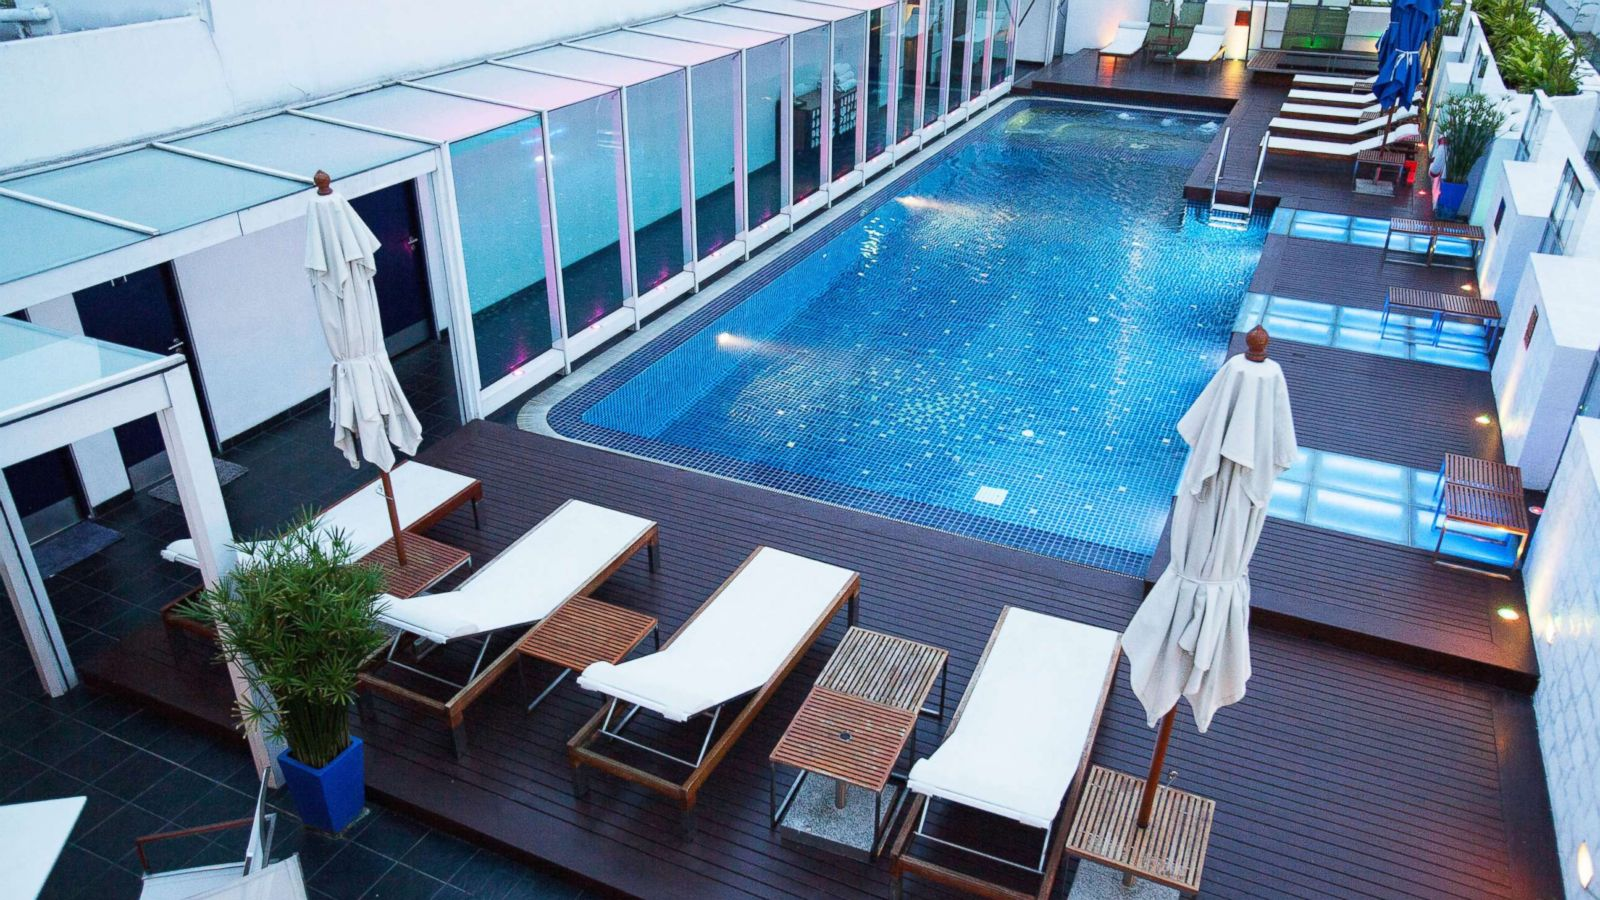 Best party hotels in Thailand